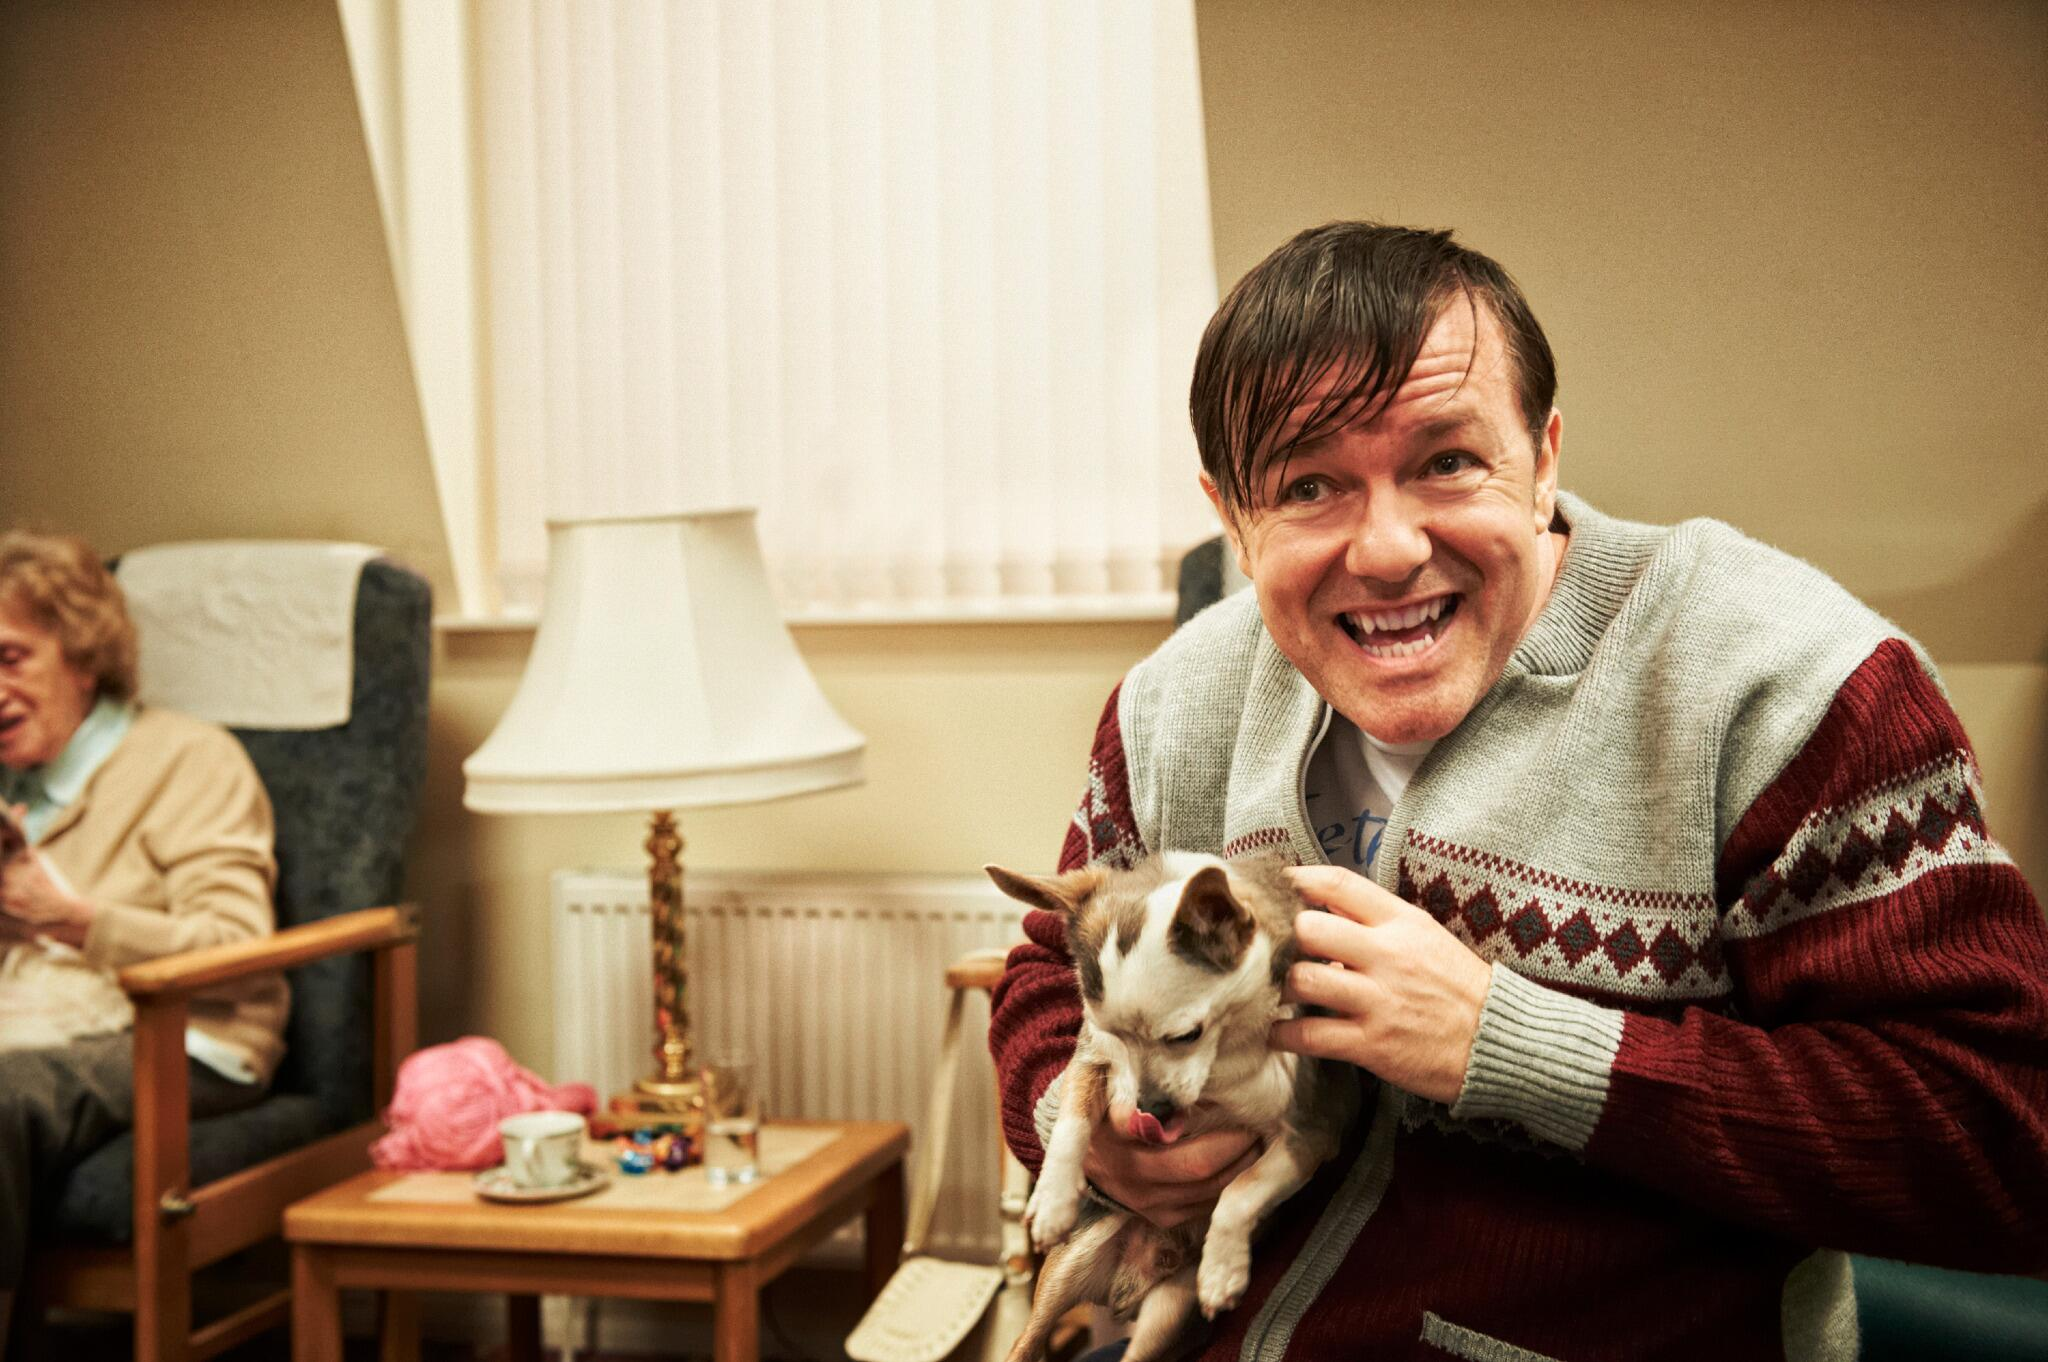 RT @POPSUGAREnt: @rickygervais Vote for Derek for best @Netflix series of 2013! http://t.co/HGMWe8562W http://t.co/ycQceMVH62